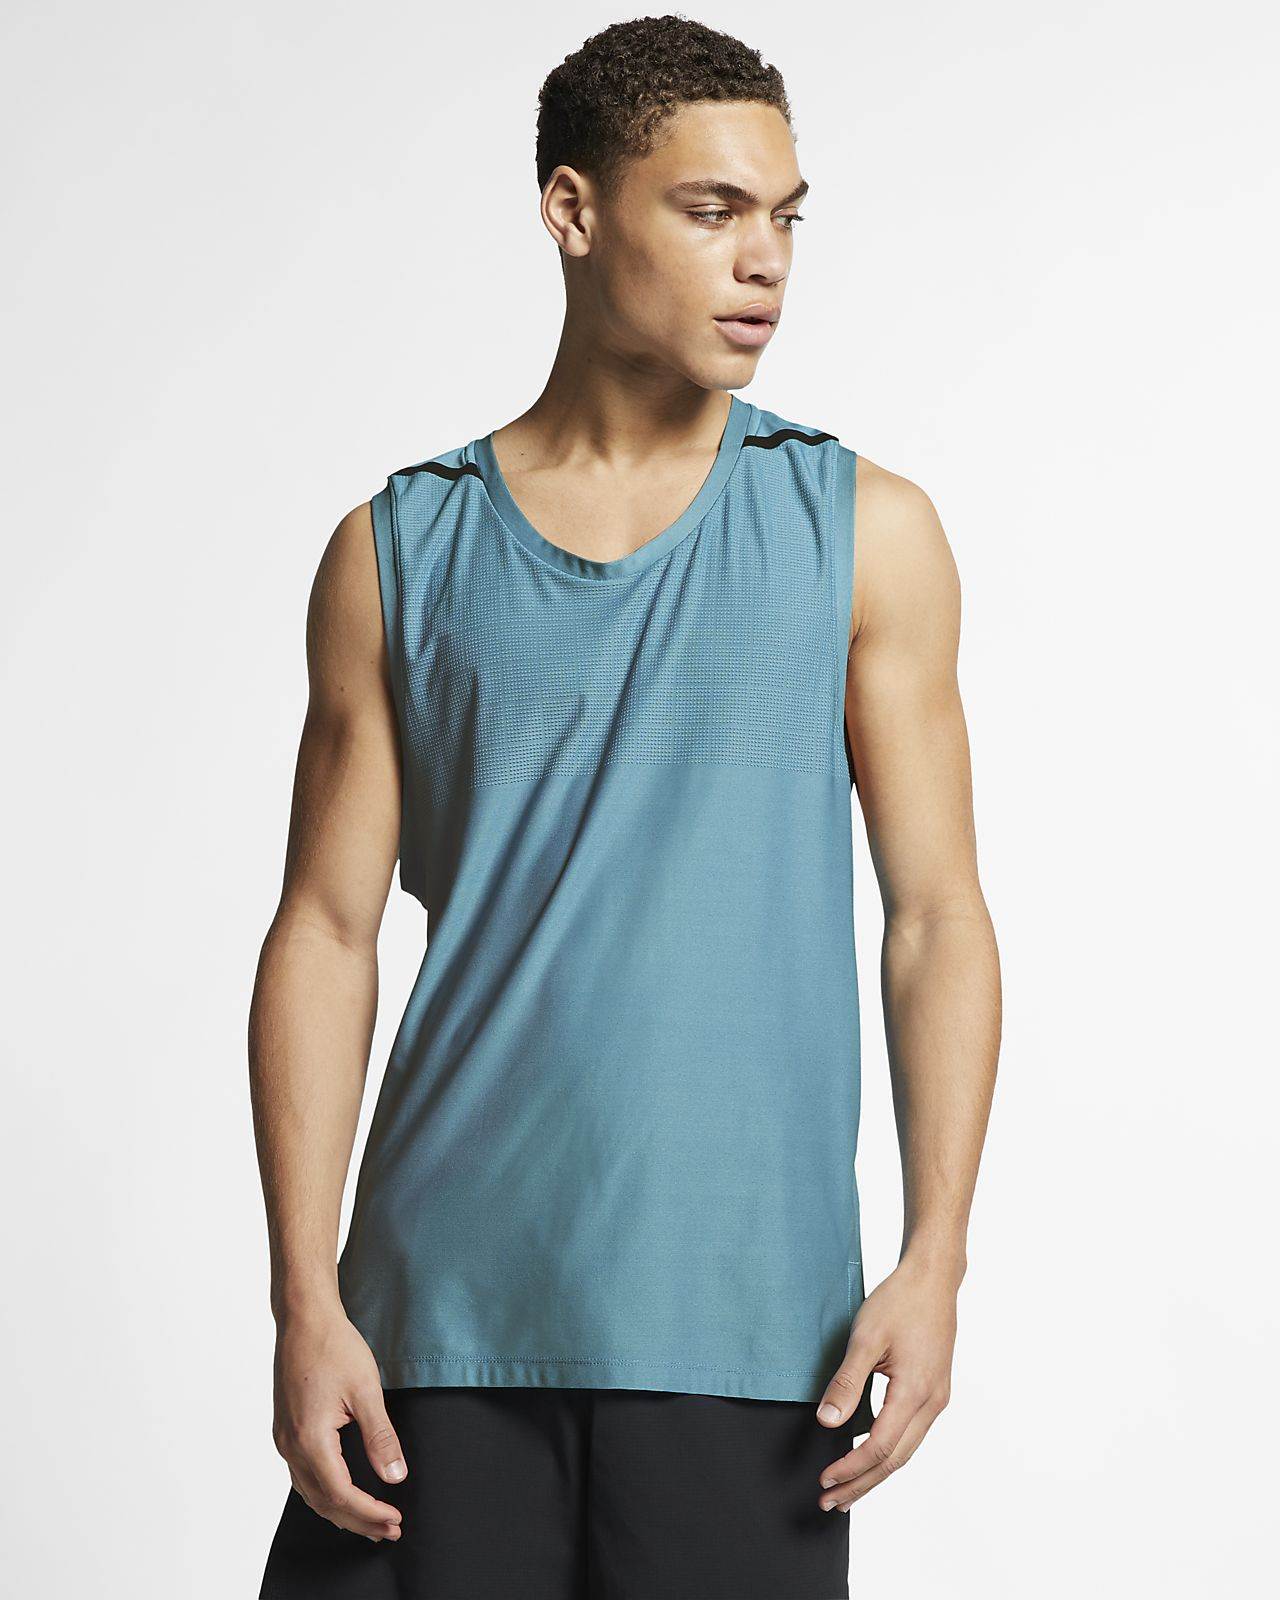 Nike Dri-FIT Tech Pack Men's Training Tank